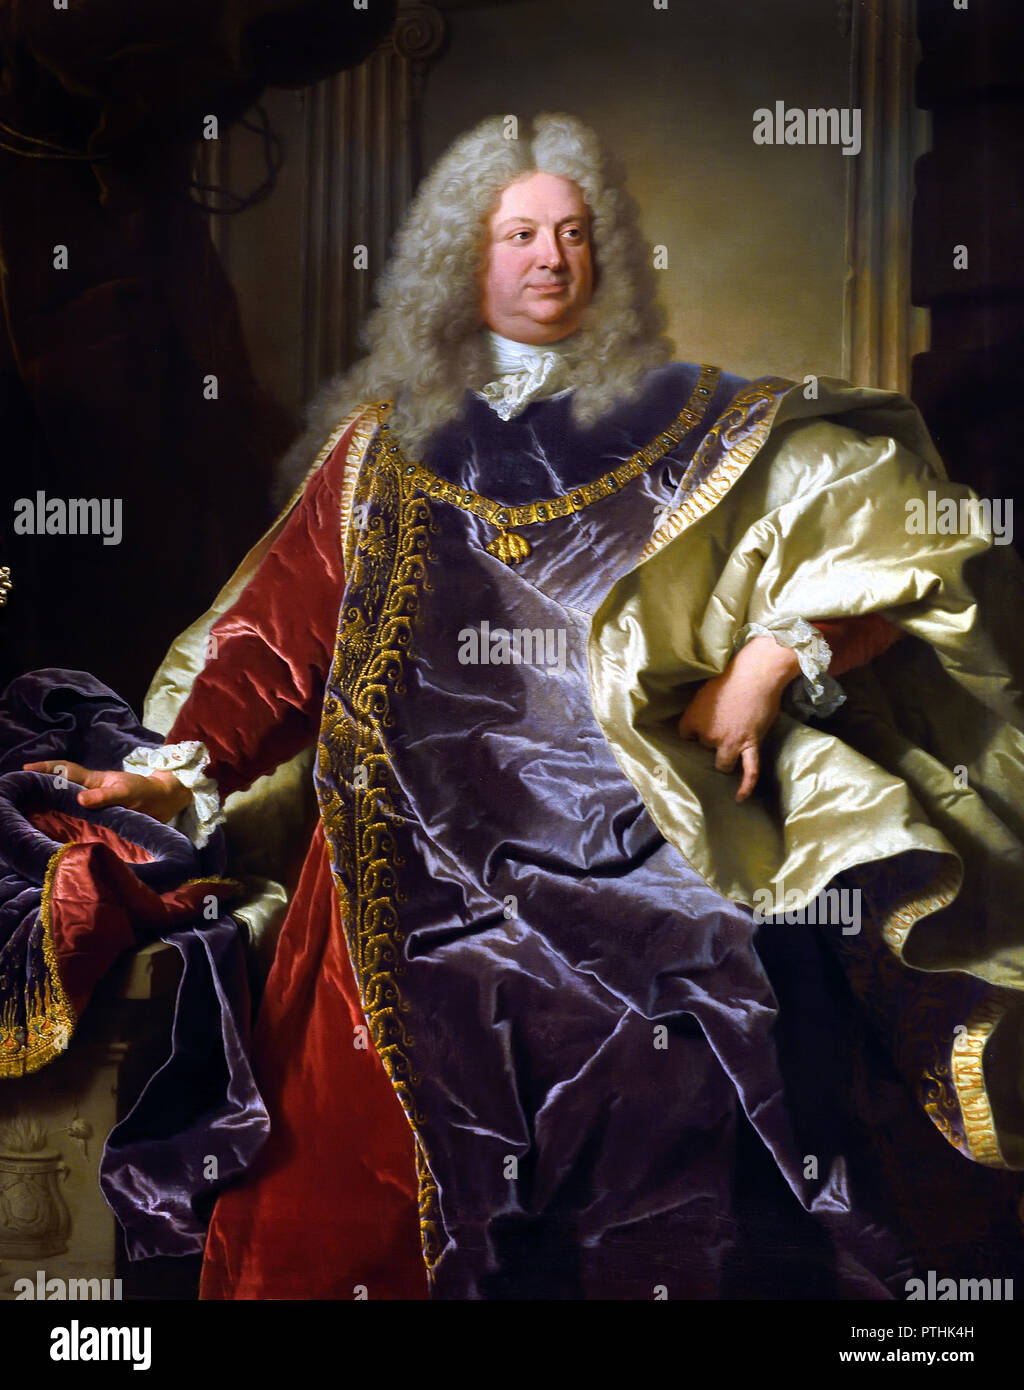 Philipp Ludwig Wenzel Sinzendorf 1671 – 1742 Austrian diplomat and statesman who for nearly four decades served as Court Chancellor responsible of foreign affairs of the Habsburg Monarchy. by painter Hyacinthe Rigaud 1659 - 1743 France French - Stock Image